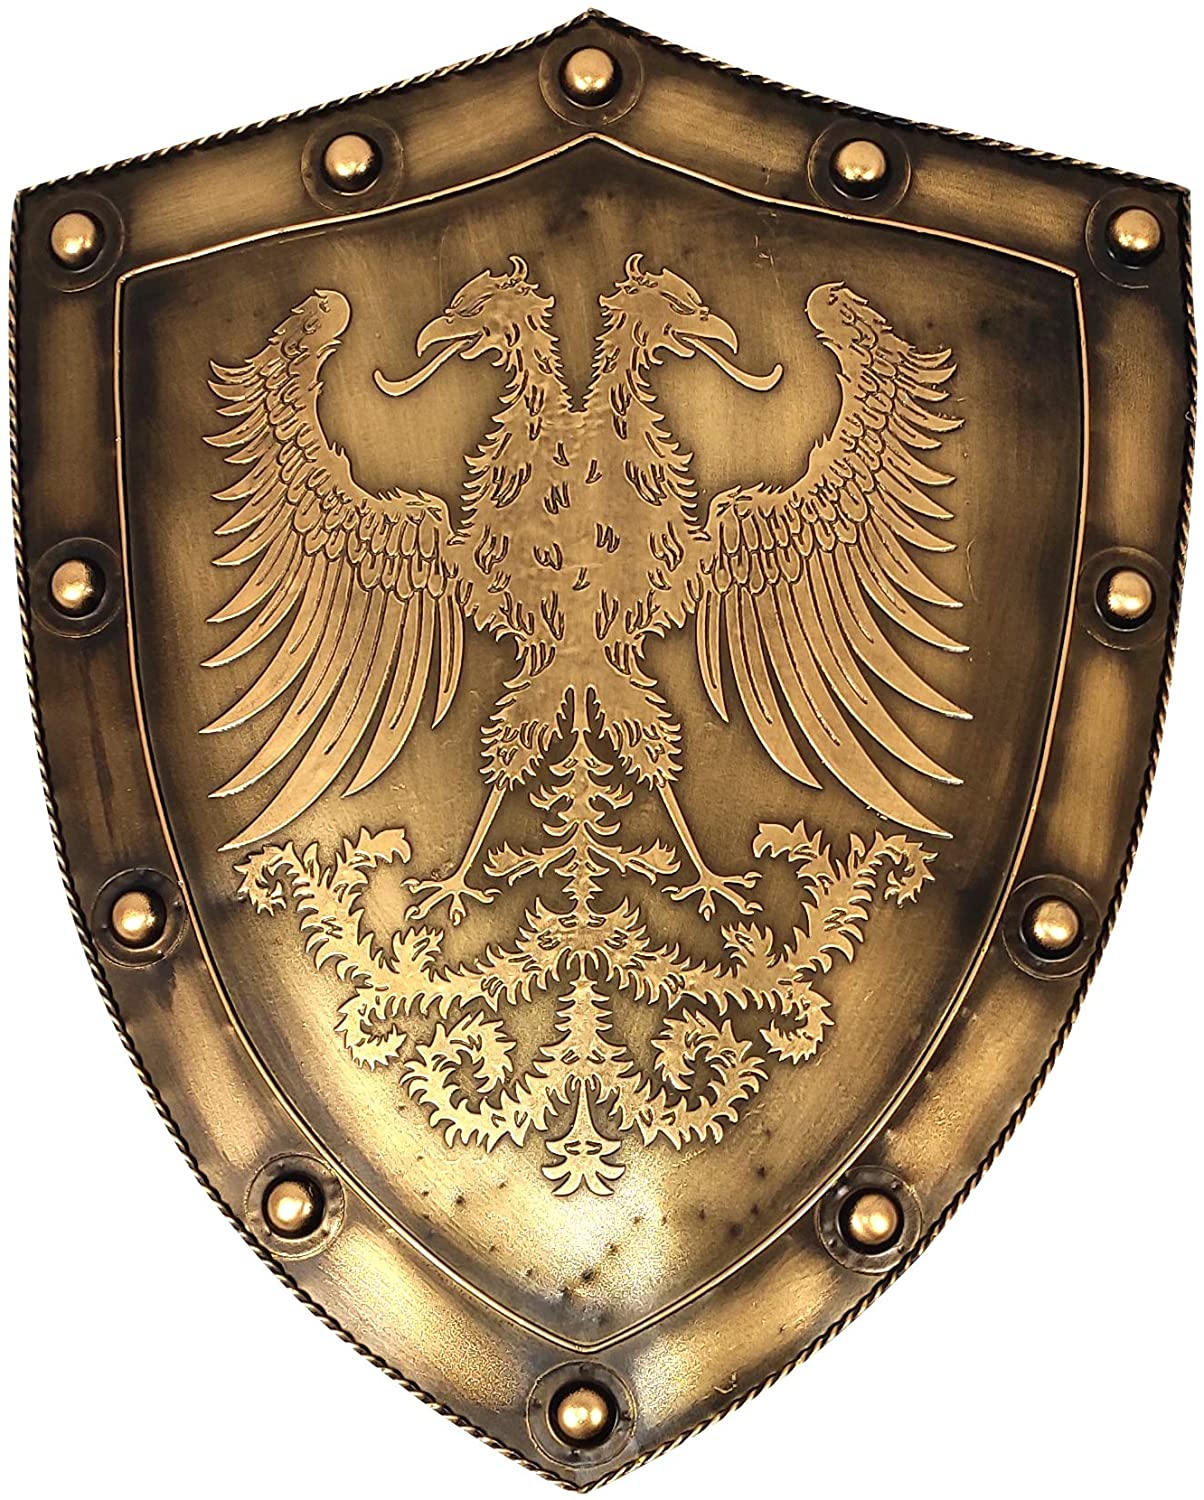 LOOYAR Medieval Holy Roman Empire Display Shield 24 Inch Wall Décor Decoration